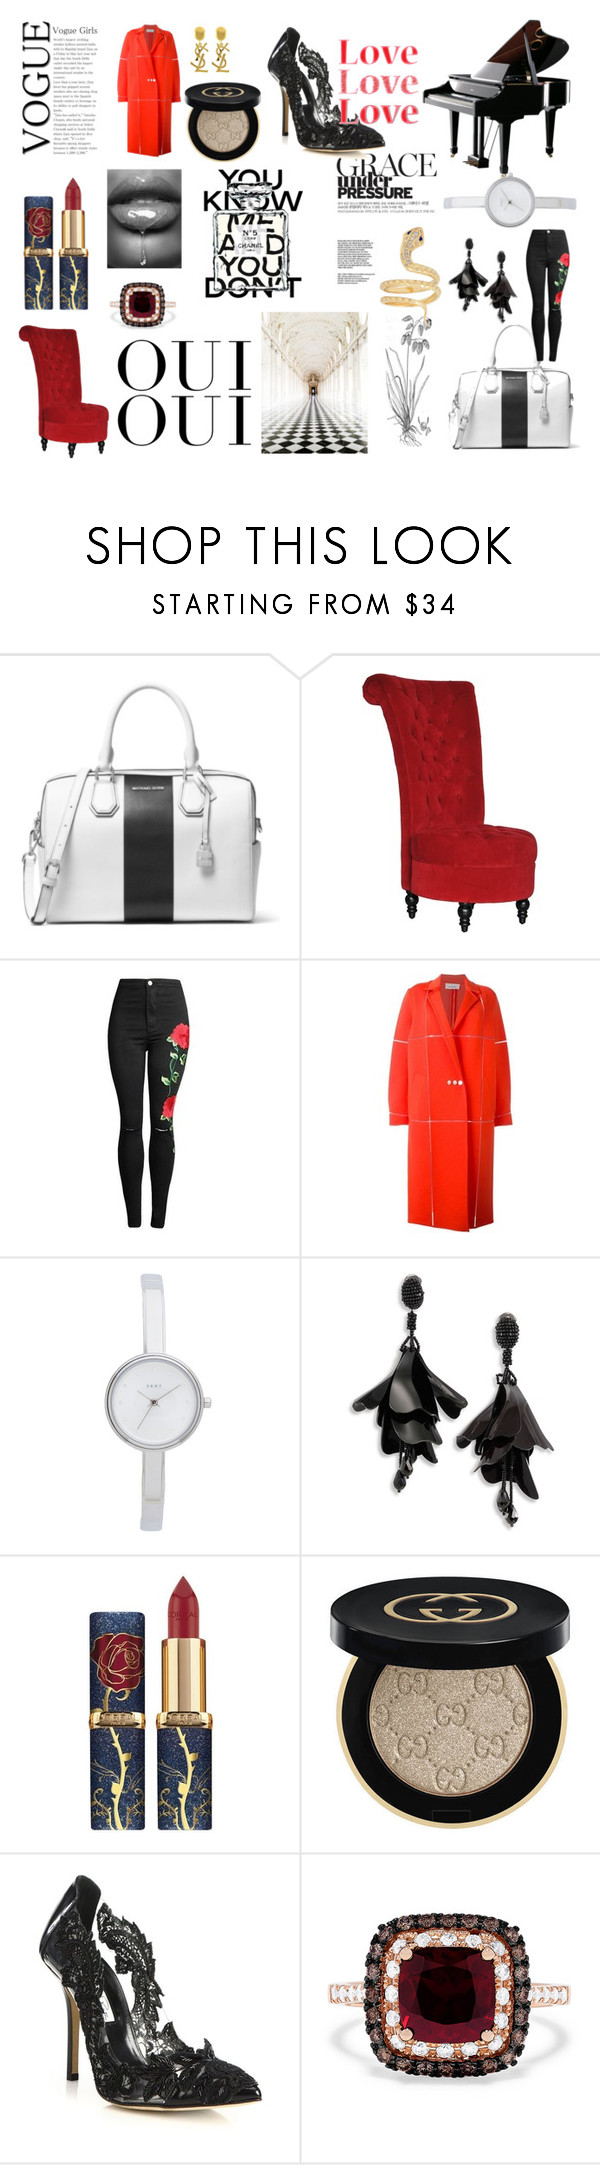 """""""SH"""" by katiem001 ❤ liked on Polyvore featuring MICHAEL Michael Kors, Courrèges, DKNY, Oscar de la Renta, Oui, Yves Saint Laurent, Gucci, Oxford, Chanel and Effy Jewelry"""